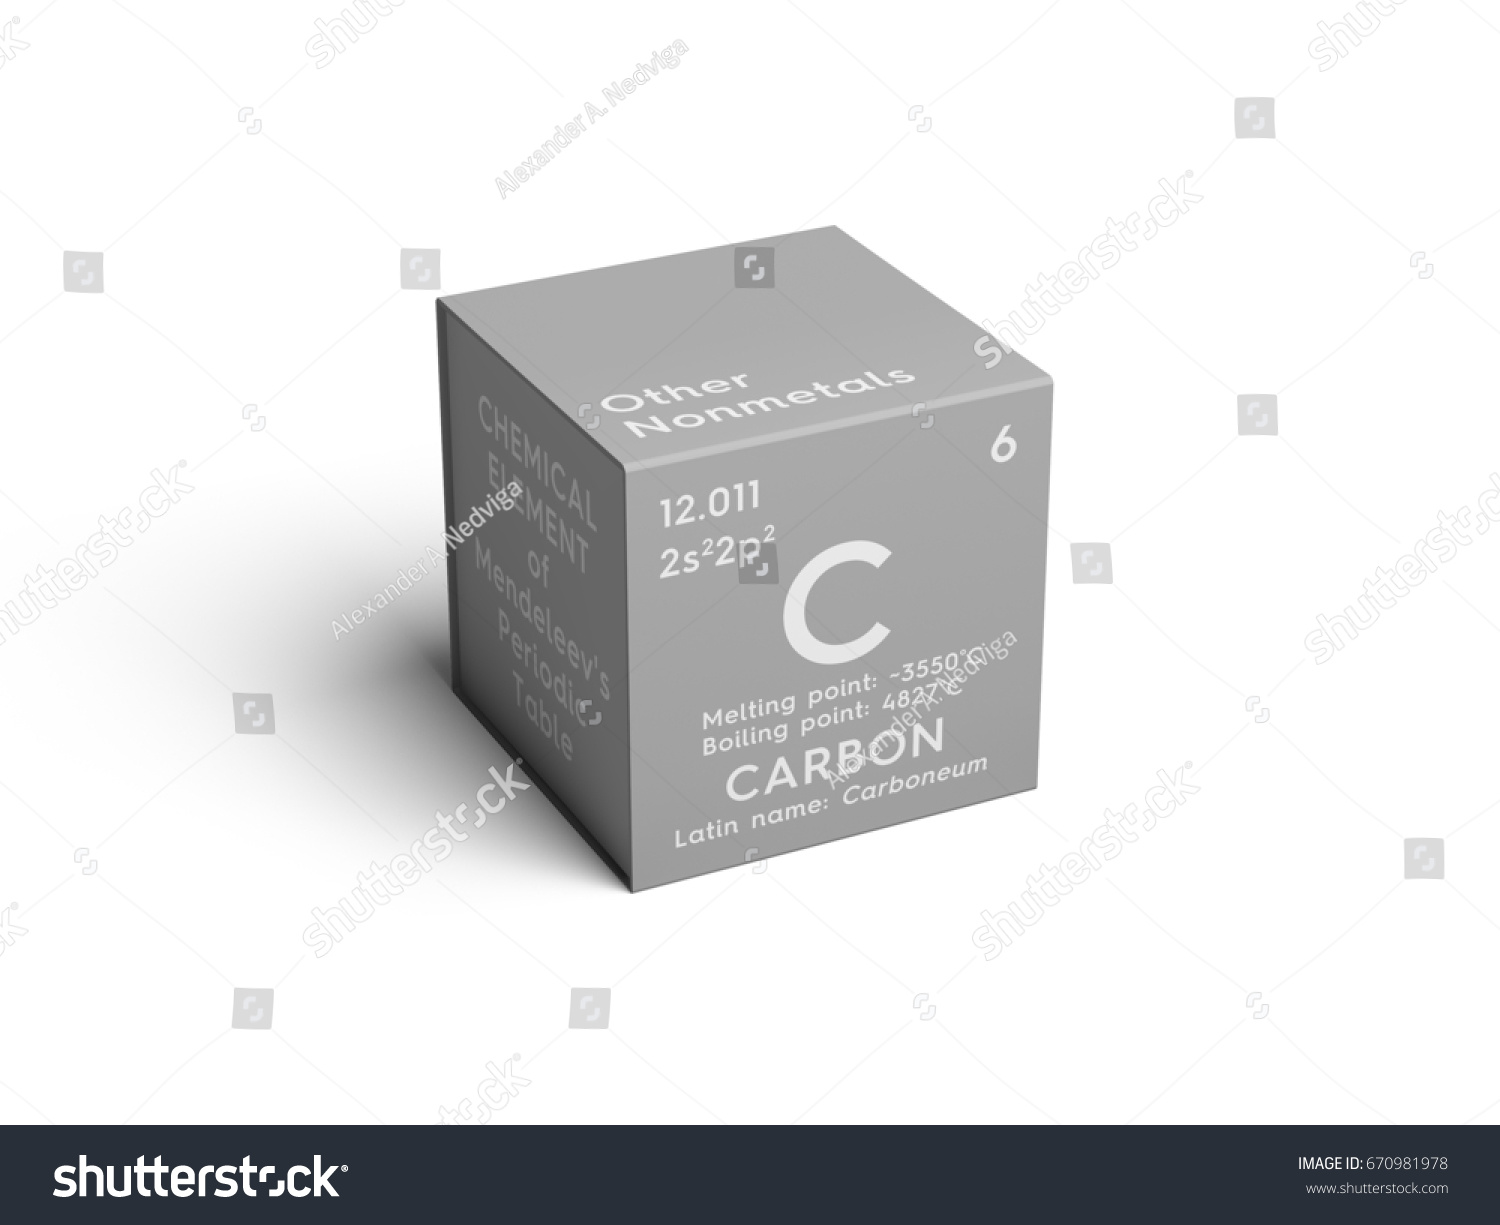 Carbon periodic table square images table design ideas carbon other nonmetals chemical element mendeleevs stock carbon other nonmetals chemical element of mendeleevs periodic table gamestrikefo Images